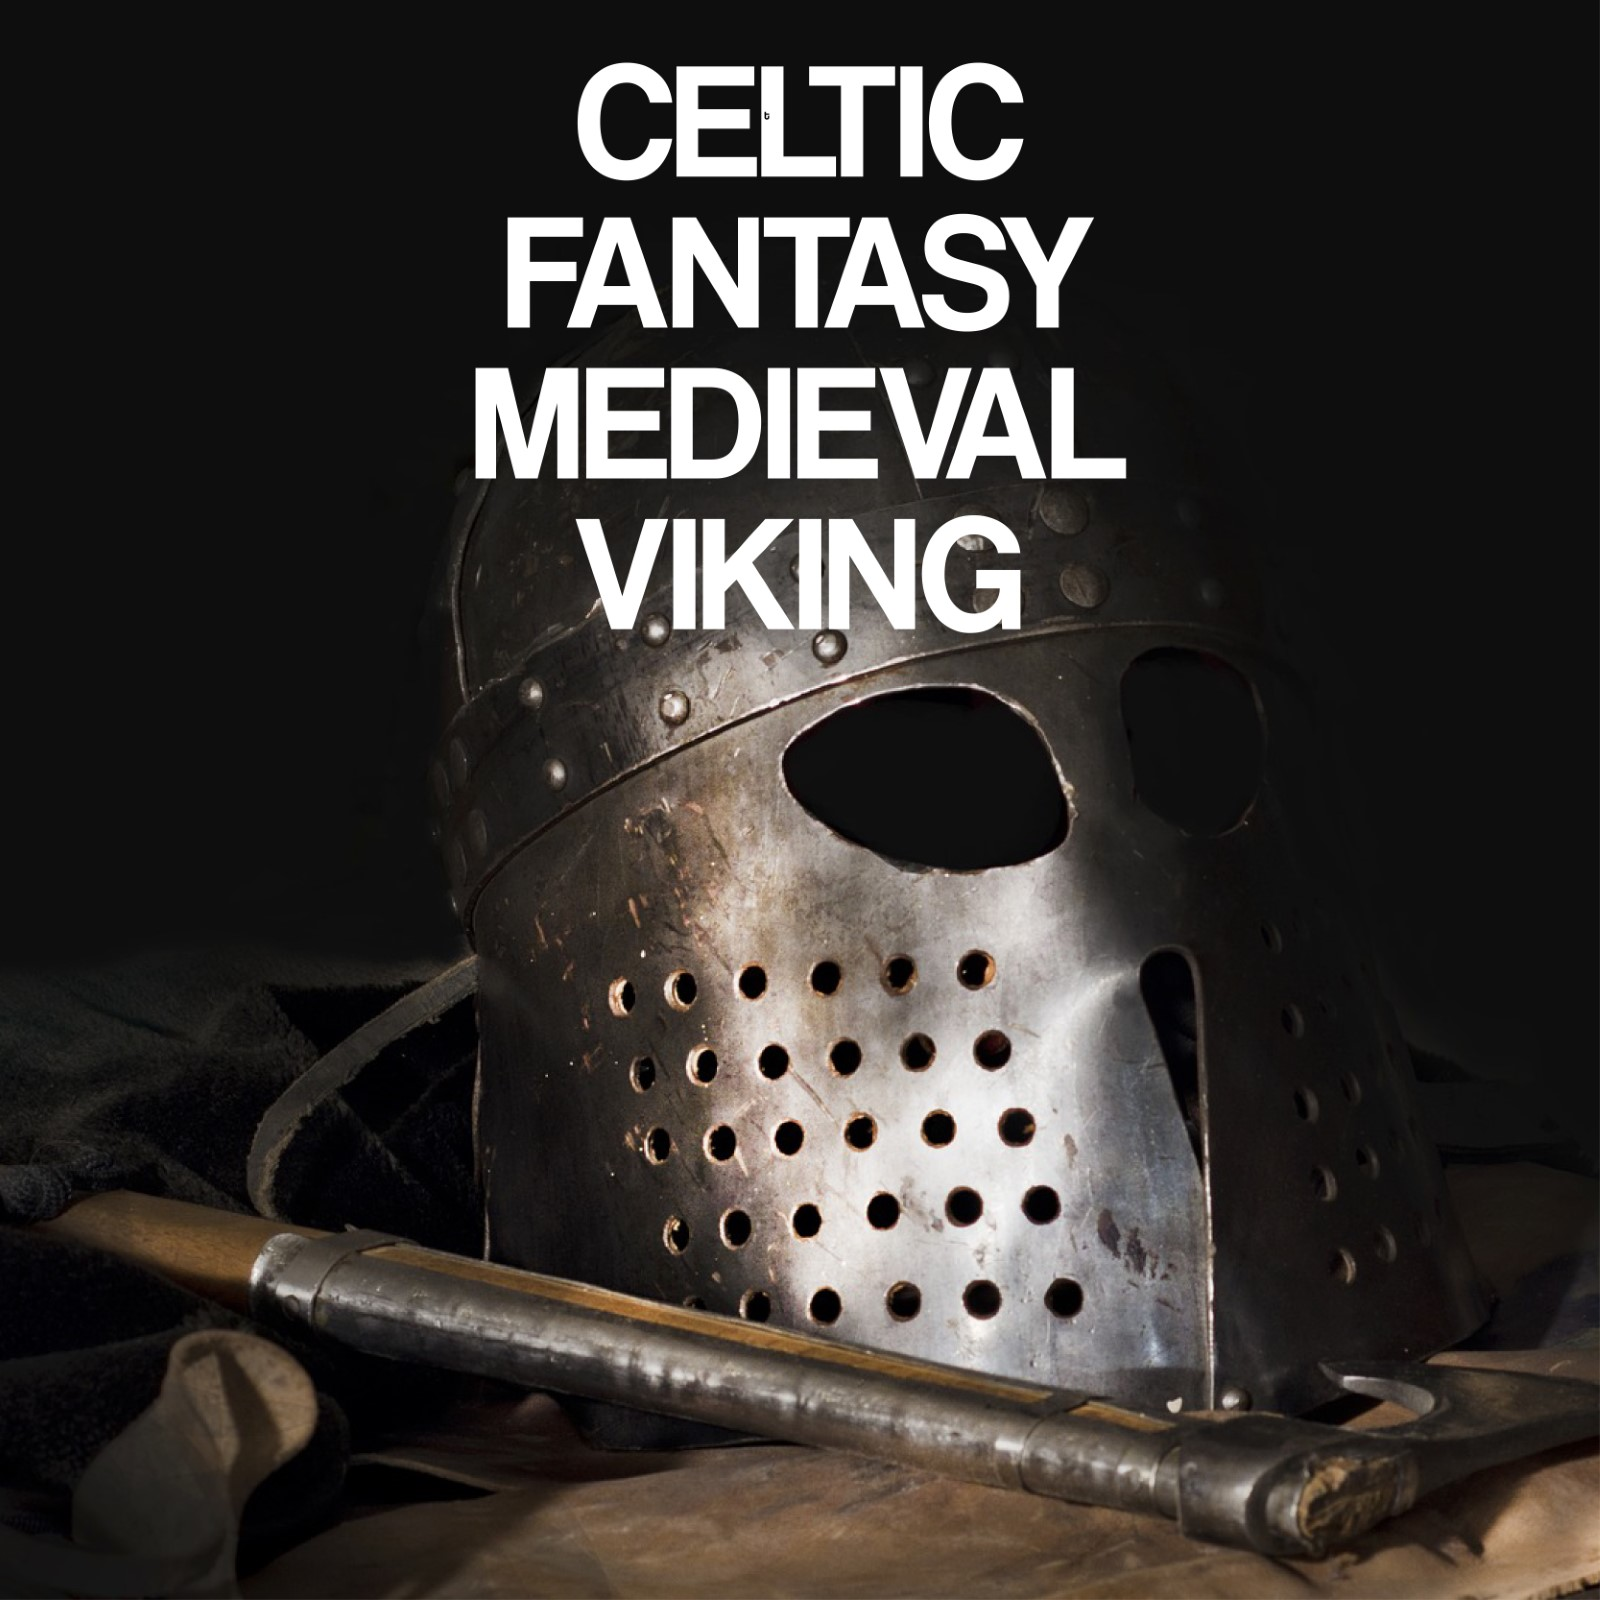 - Big collection of epic pieces in the celtic, fantasy, medieval and viking genre.Goosebump alert!